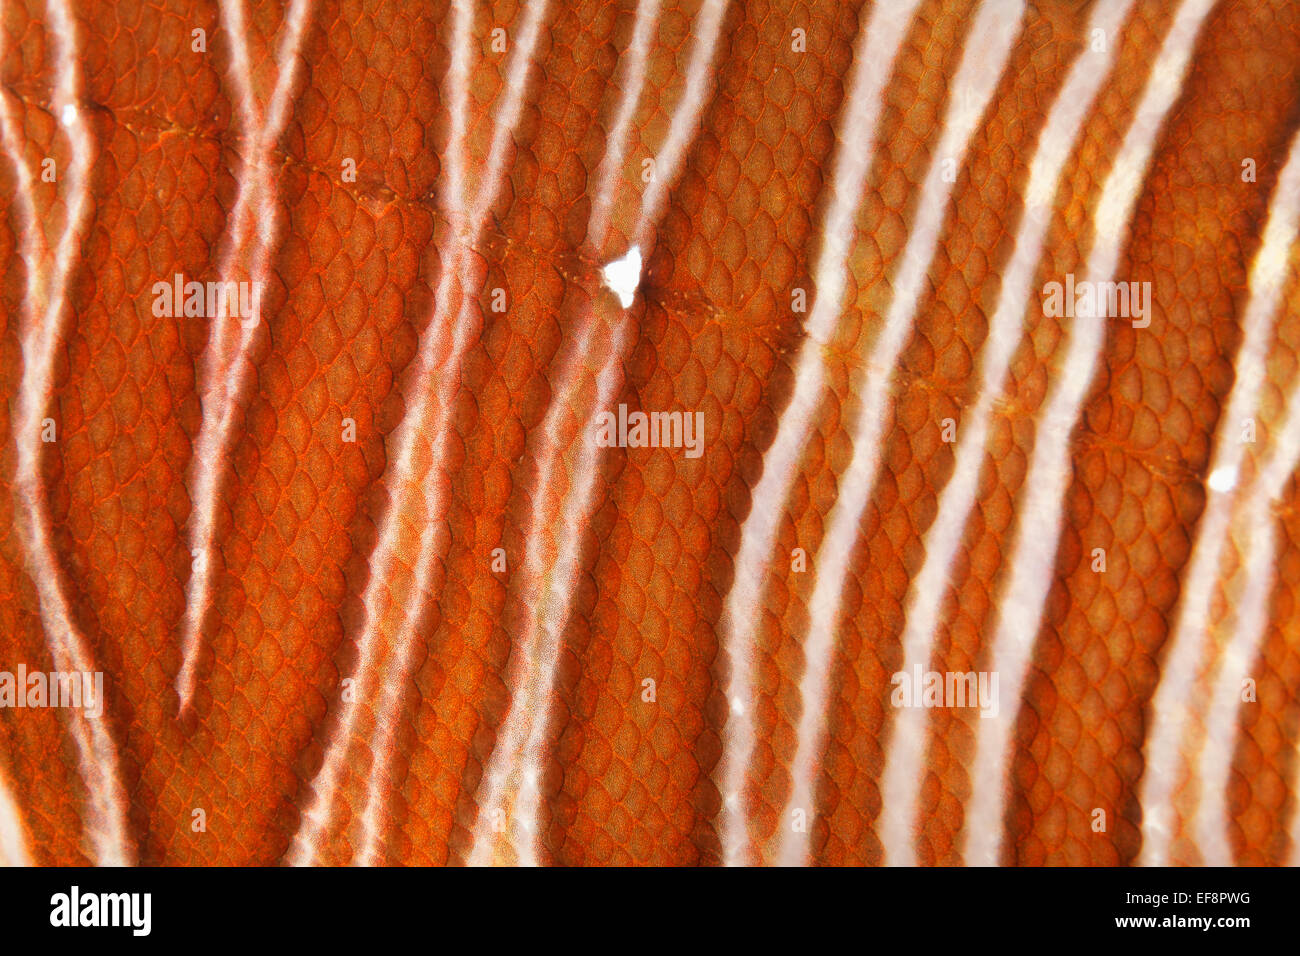 Red Lionfish (Pterois volitans), detail view of scales and the lateral line, Jordan - Stock Image